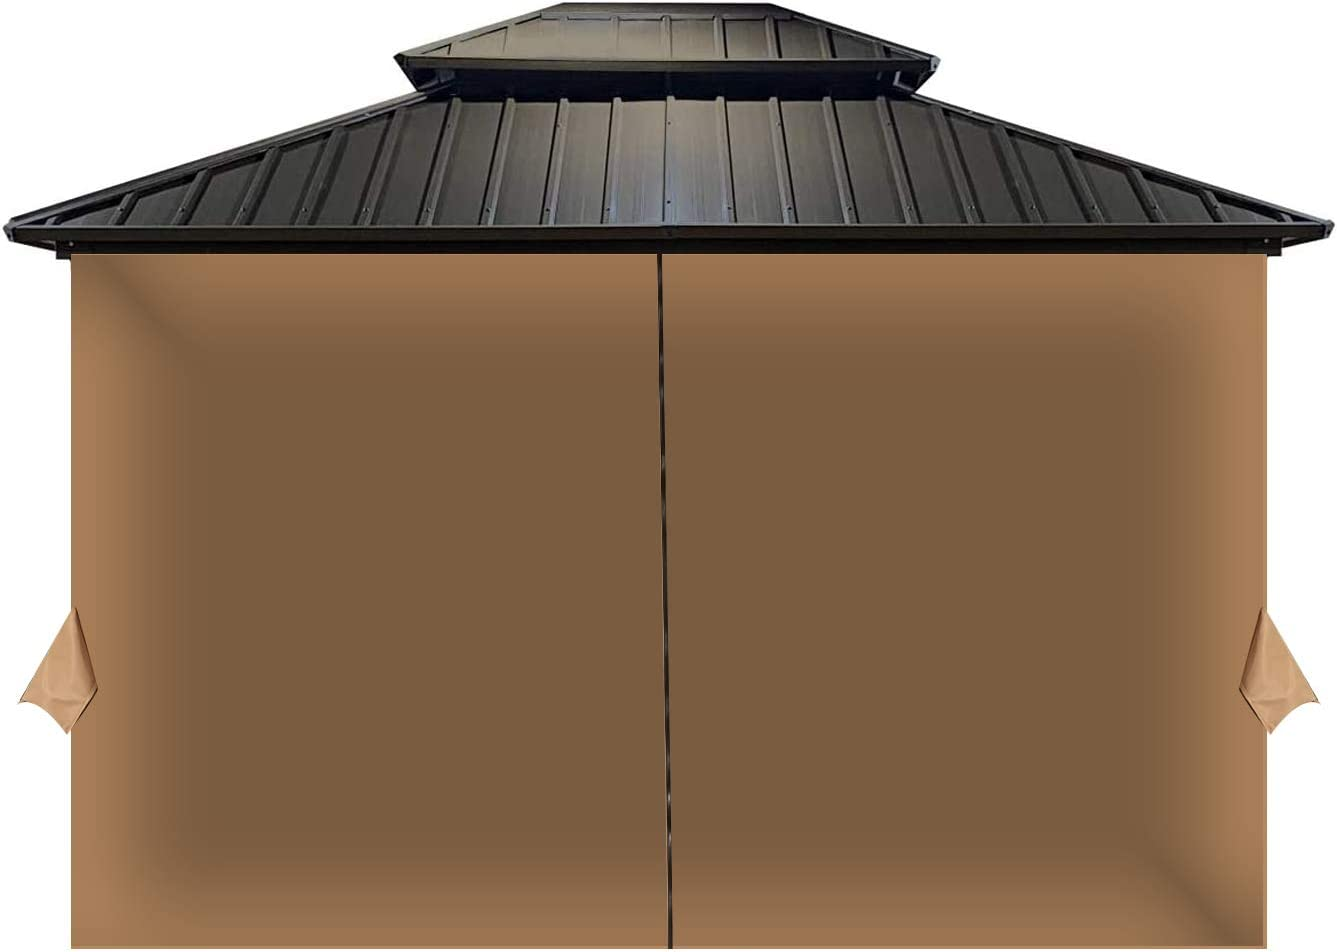 COWVIE Gazebo Curtain Replacement Universal 4-Panel Sidewalls 12' x 12' (Only Curtain)